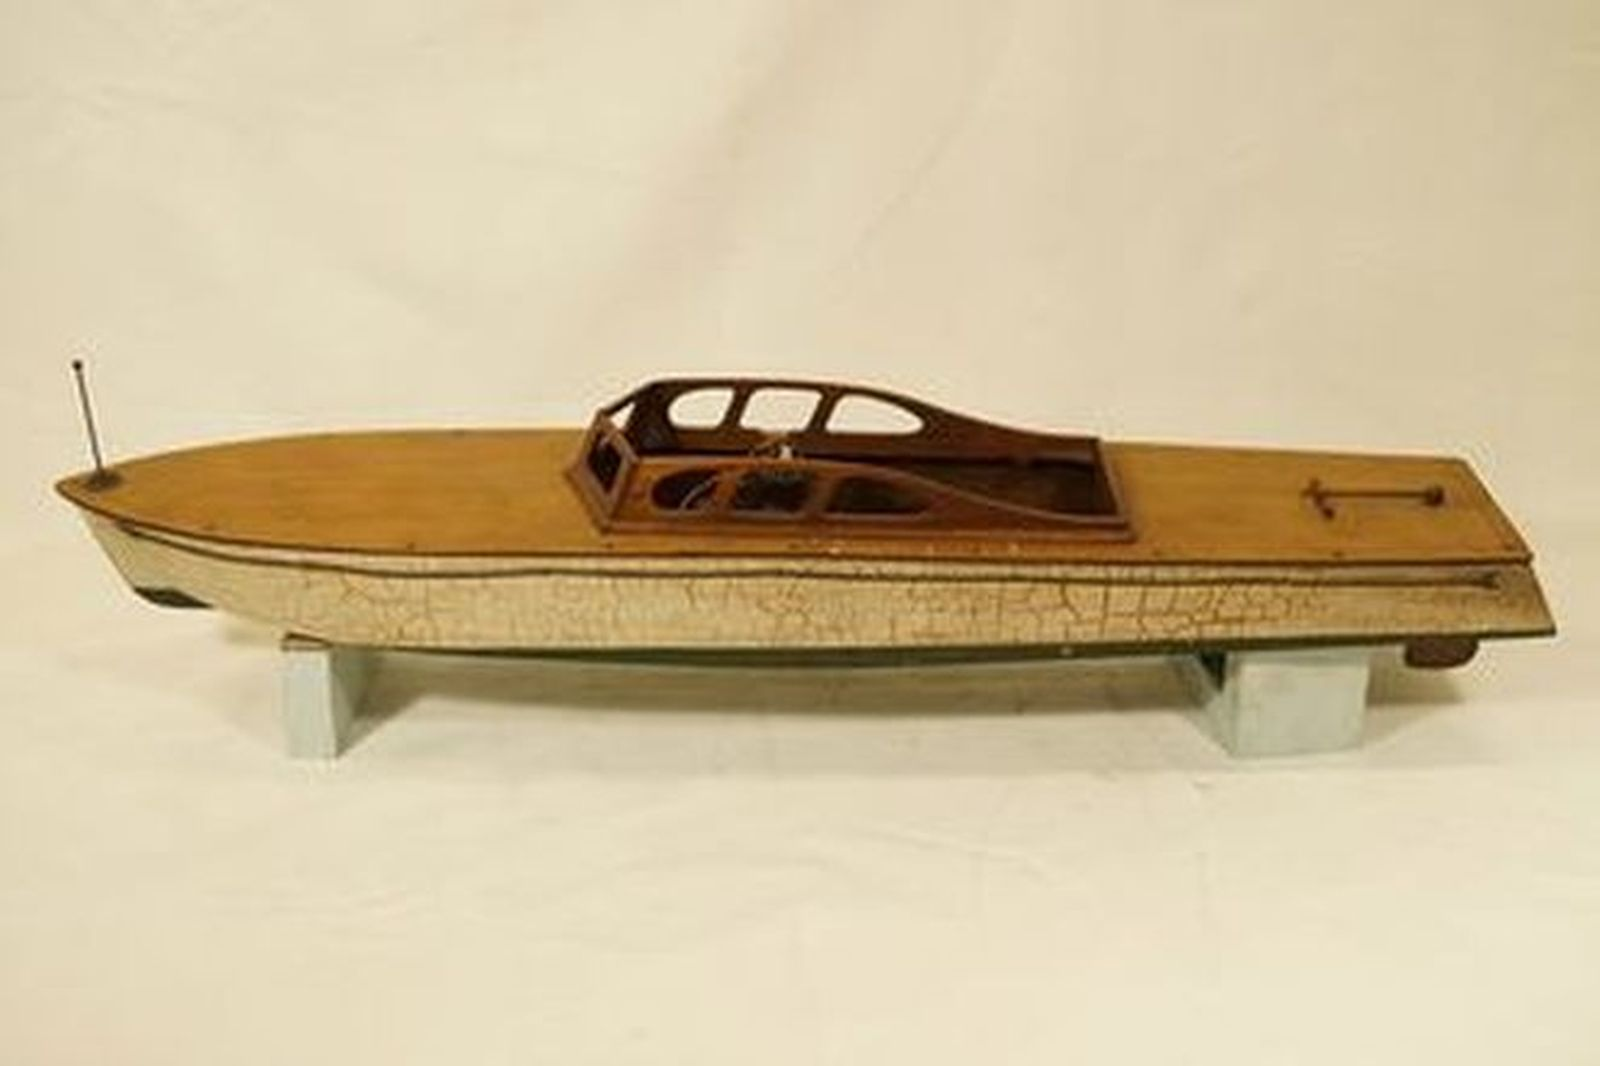 Model Boat - Vintage Wooden Speed boat with G.H.Q USA Aero enginebrass prop, shaftand rudder